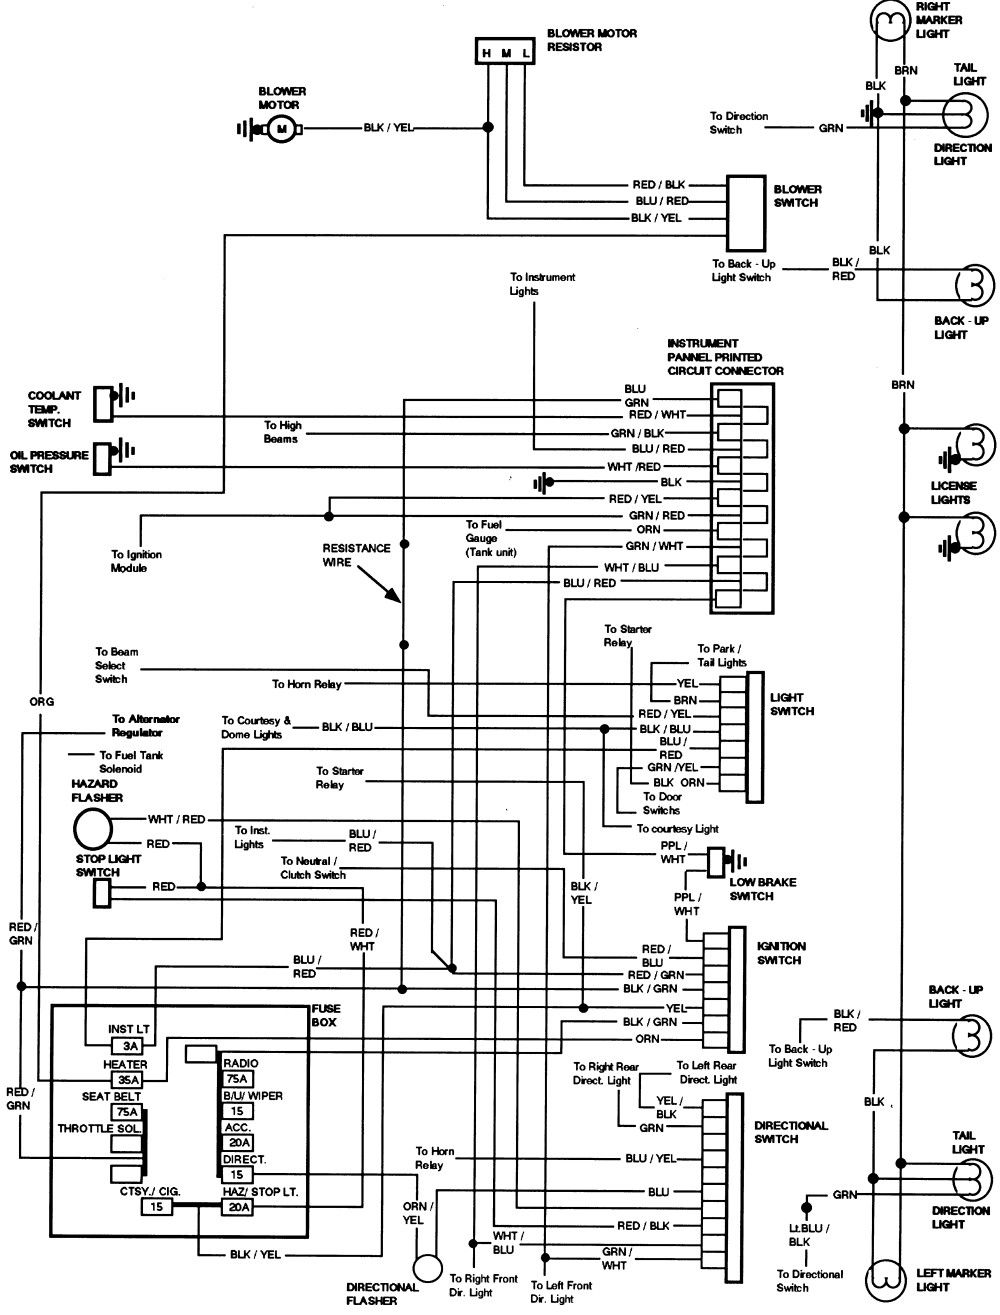 ford ignition switch wiring diagram 1956 ford f100 ford 2000 ford trucks wire [ 1000 x 1315 Pixel ]